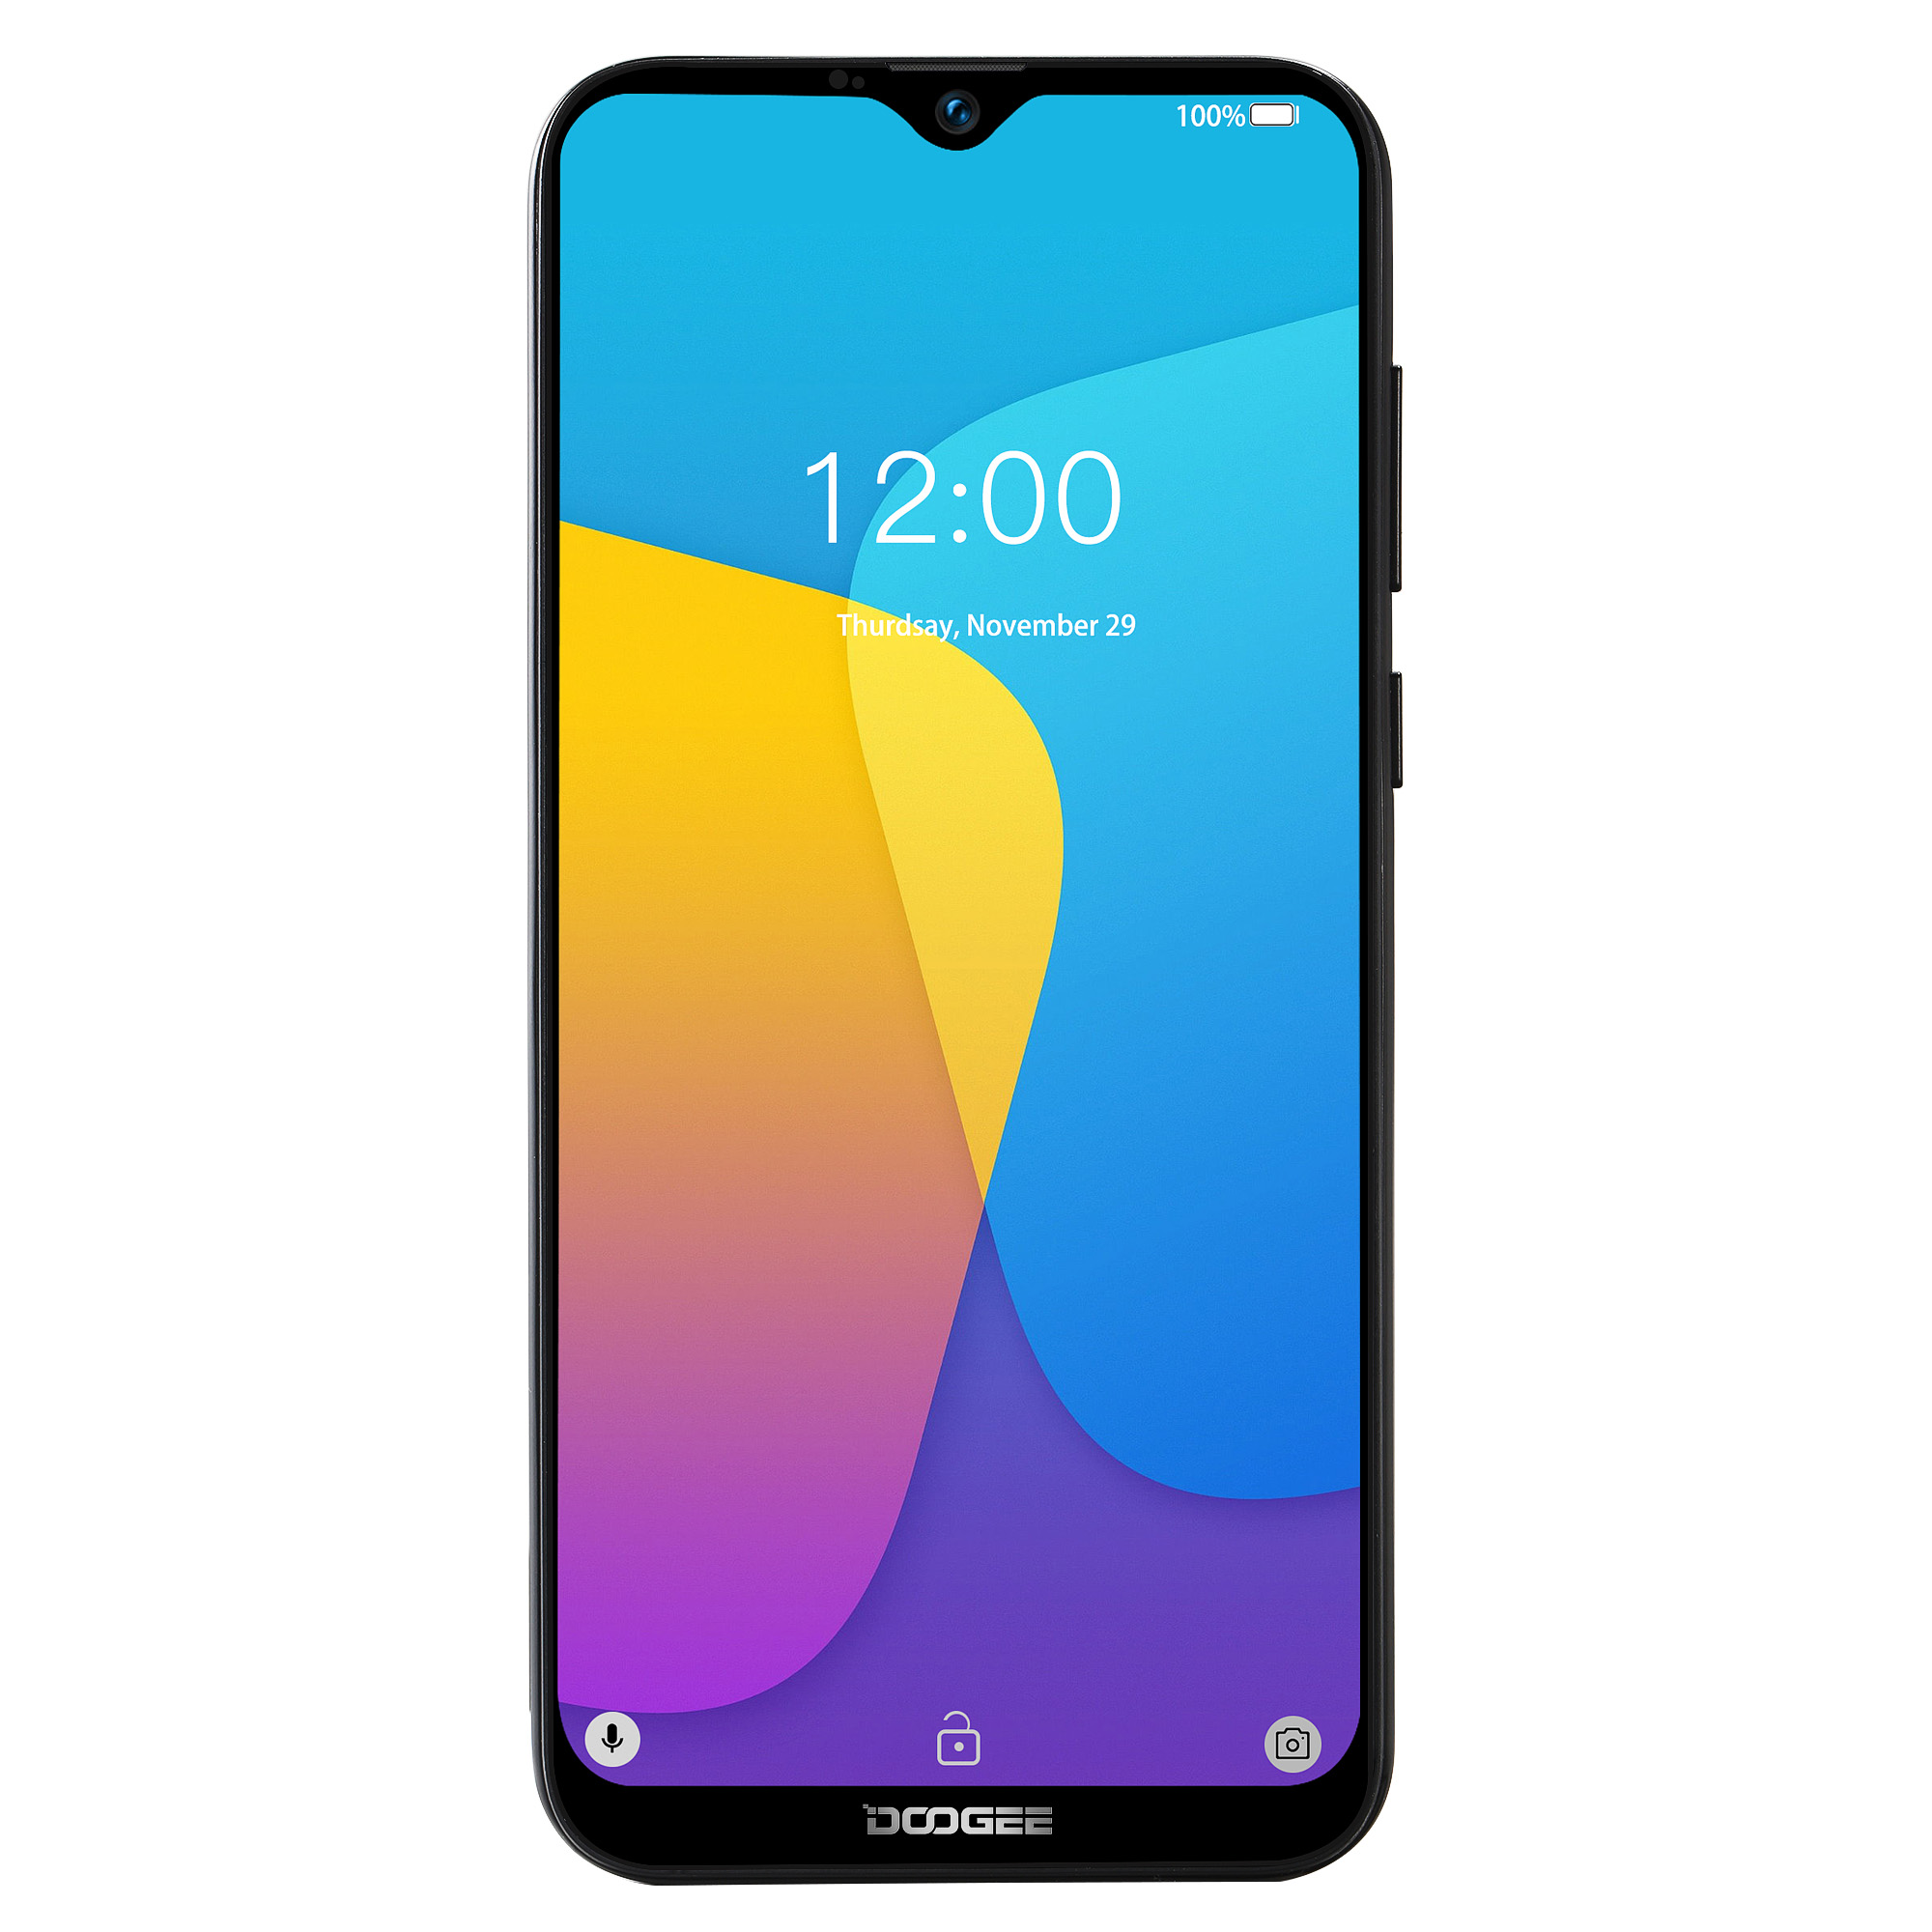 DOOGEE X90 Cellphone 6.1inch 19:9 Waterdrop LTPS Screen Smartphone Quad Core CPU 1GB RAM+16GB ROM 3400mAh Battery Dual SIM Cards 8MP+5MP Camera Android 8.1 OS  Black_Russian version